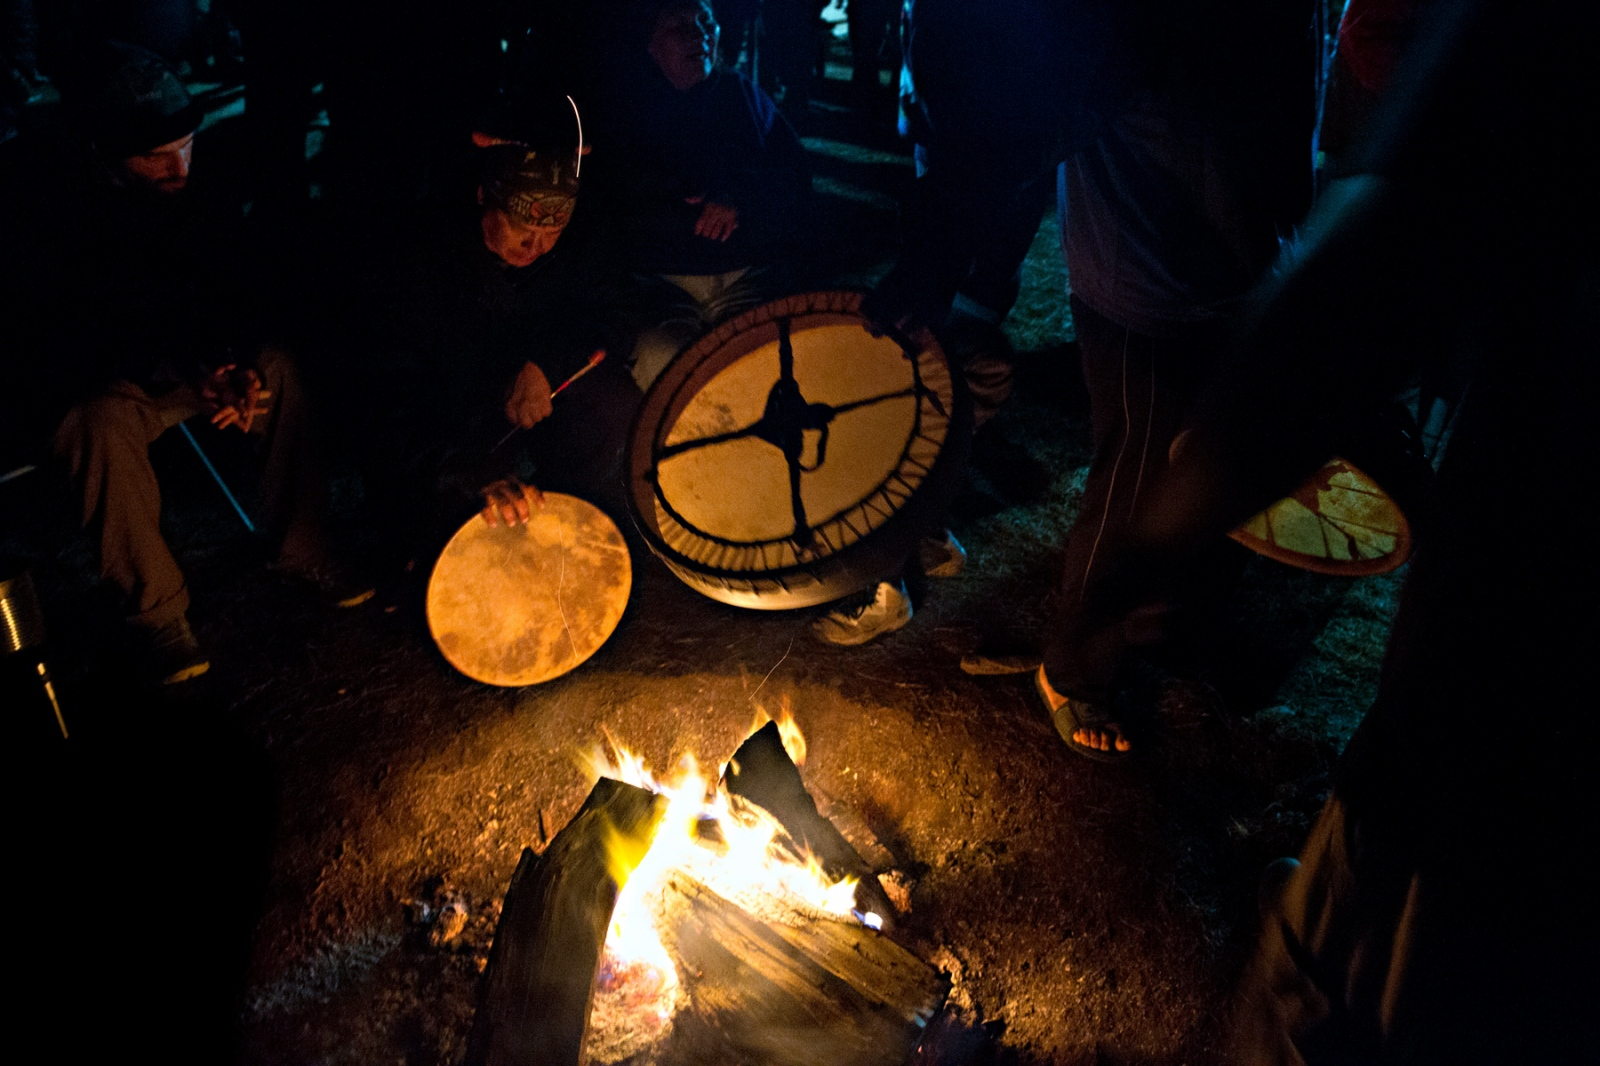 Drummers warm their instruments over the Sacred Fire at the Center Camp to help deepen the sound during the nightly songs and dances.